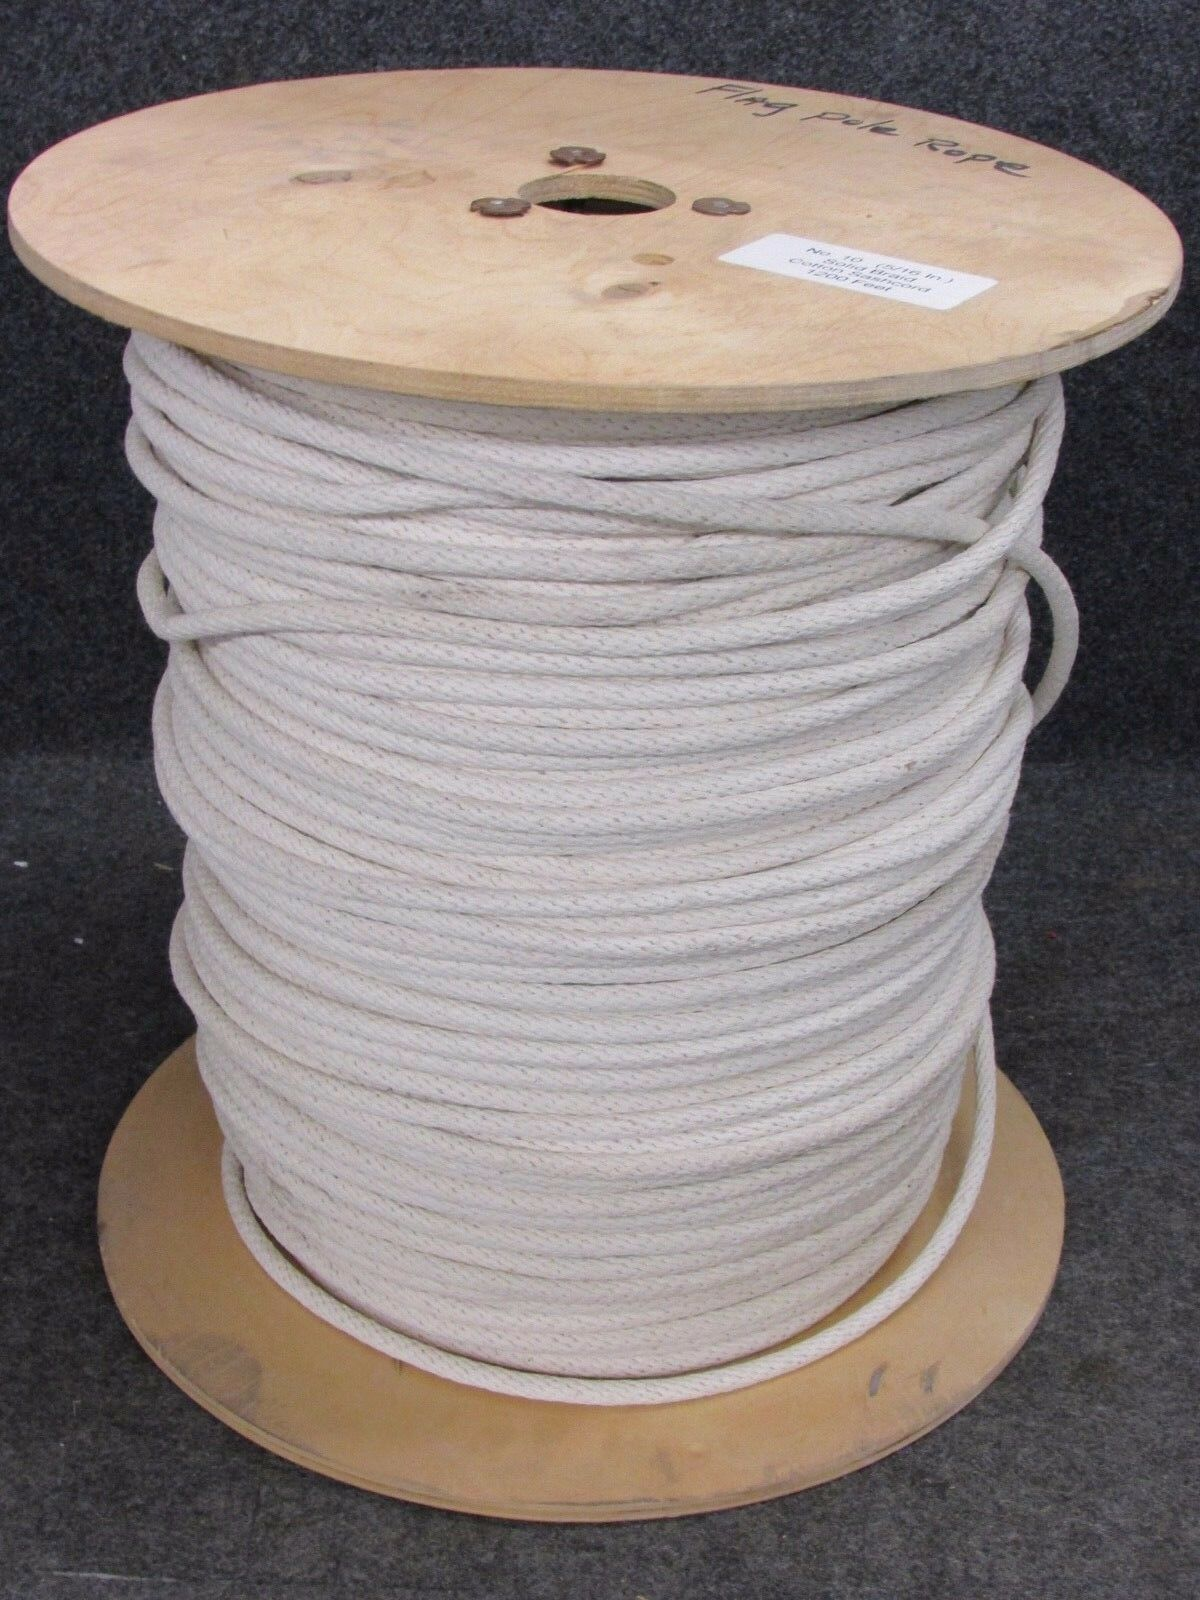 No. 10 SOLID BRAID COTTON SASH CORD ROPE, 5  16  x 1000' (APPROXIMATE LENGTH)  most preferential